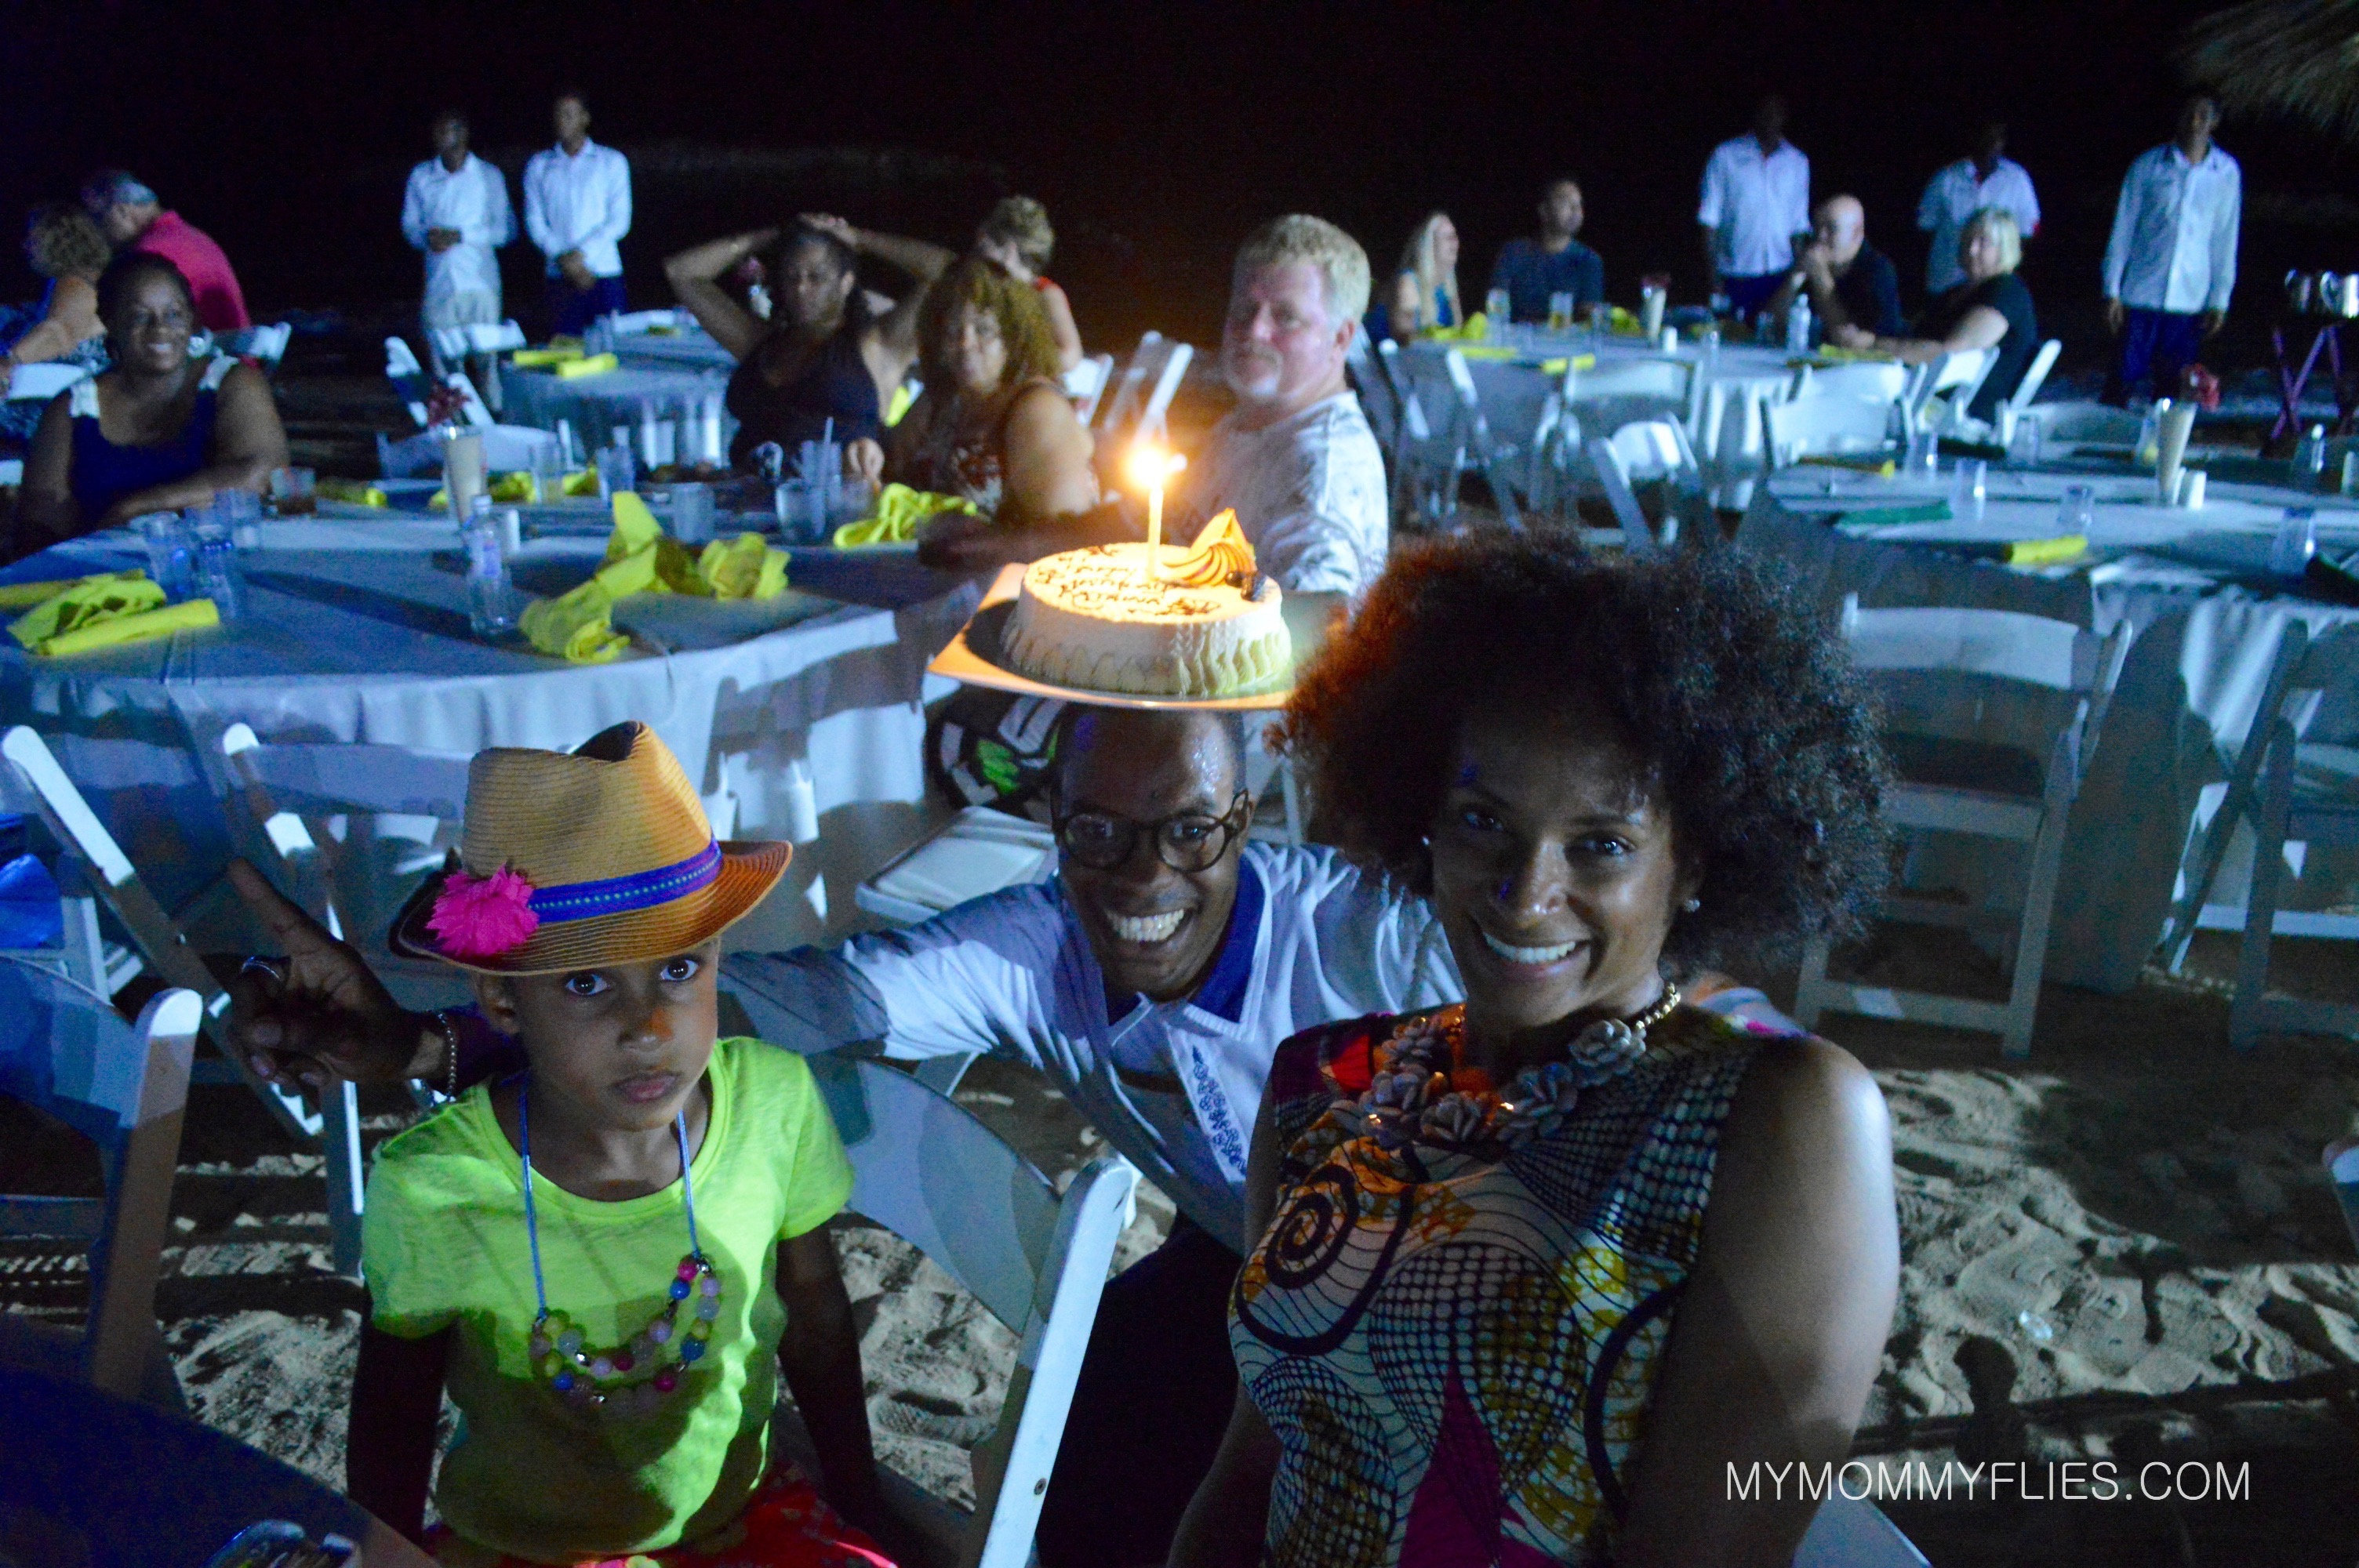 Our final night ended in a beach party and surprise birthday celebration hosted by our butler.